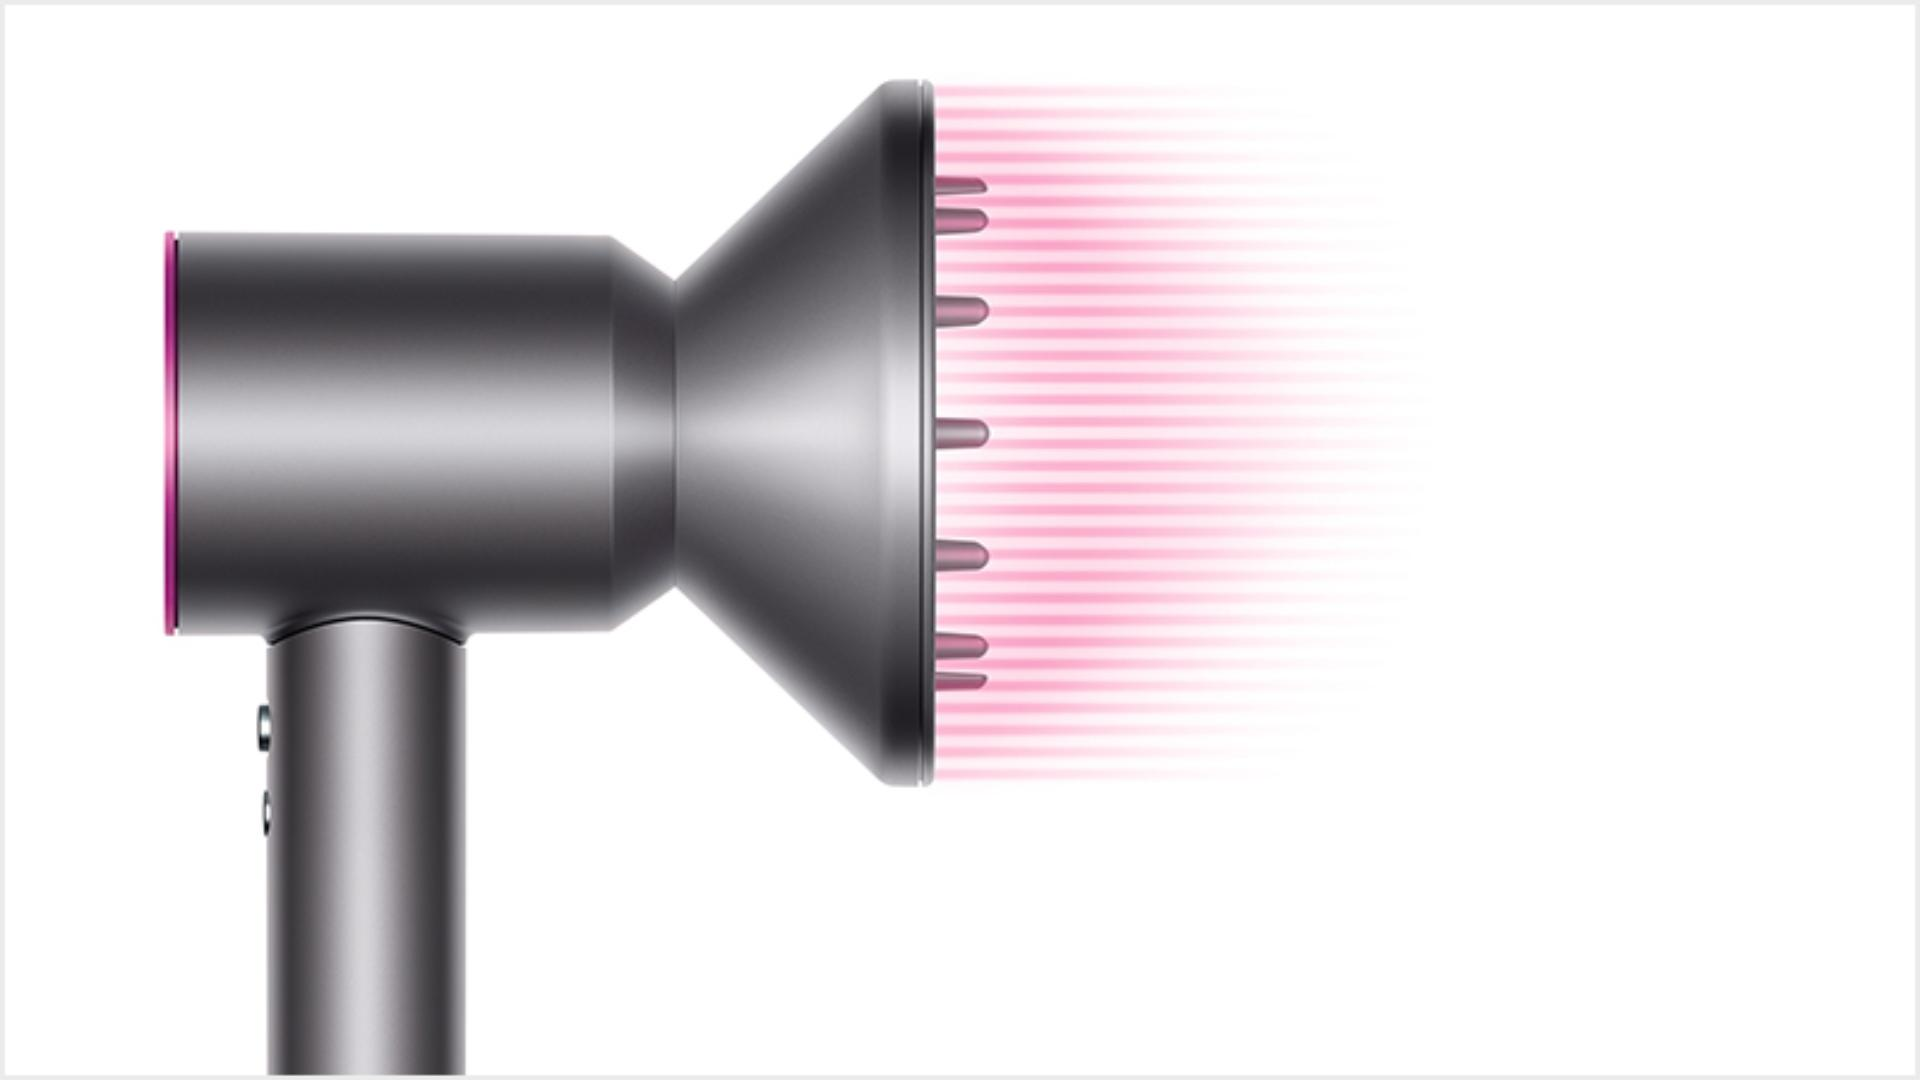 Dyson Supersonic™ hair dryer Black/Nickel with re-engineered Diffuser attached